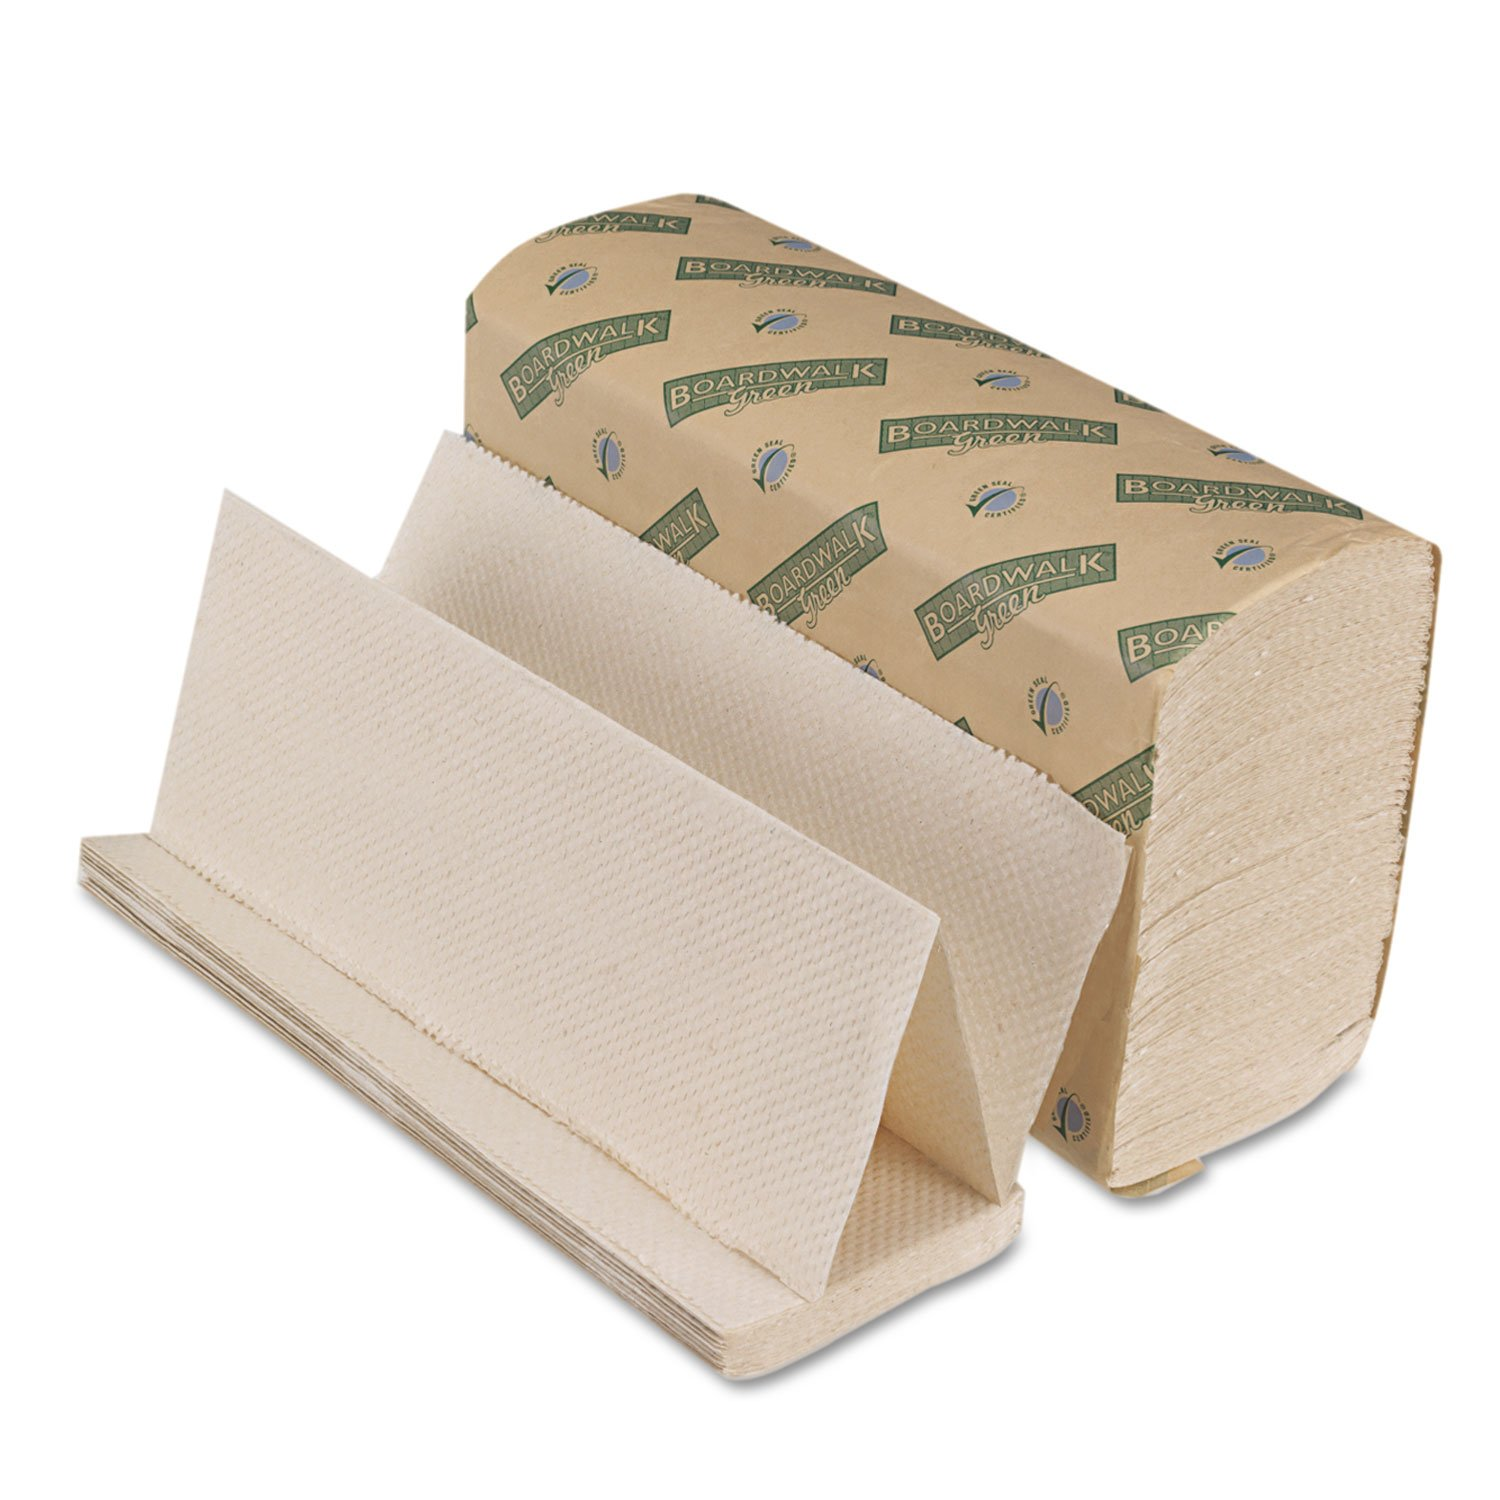 Boardwalk Green Folded Paper Towels, Multi-Fold, Natural We, 9 1/8W X 9 1/2L, 4000/Carton (10Green)